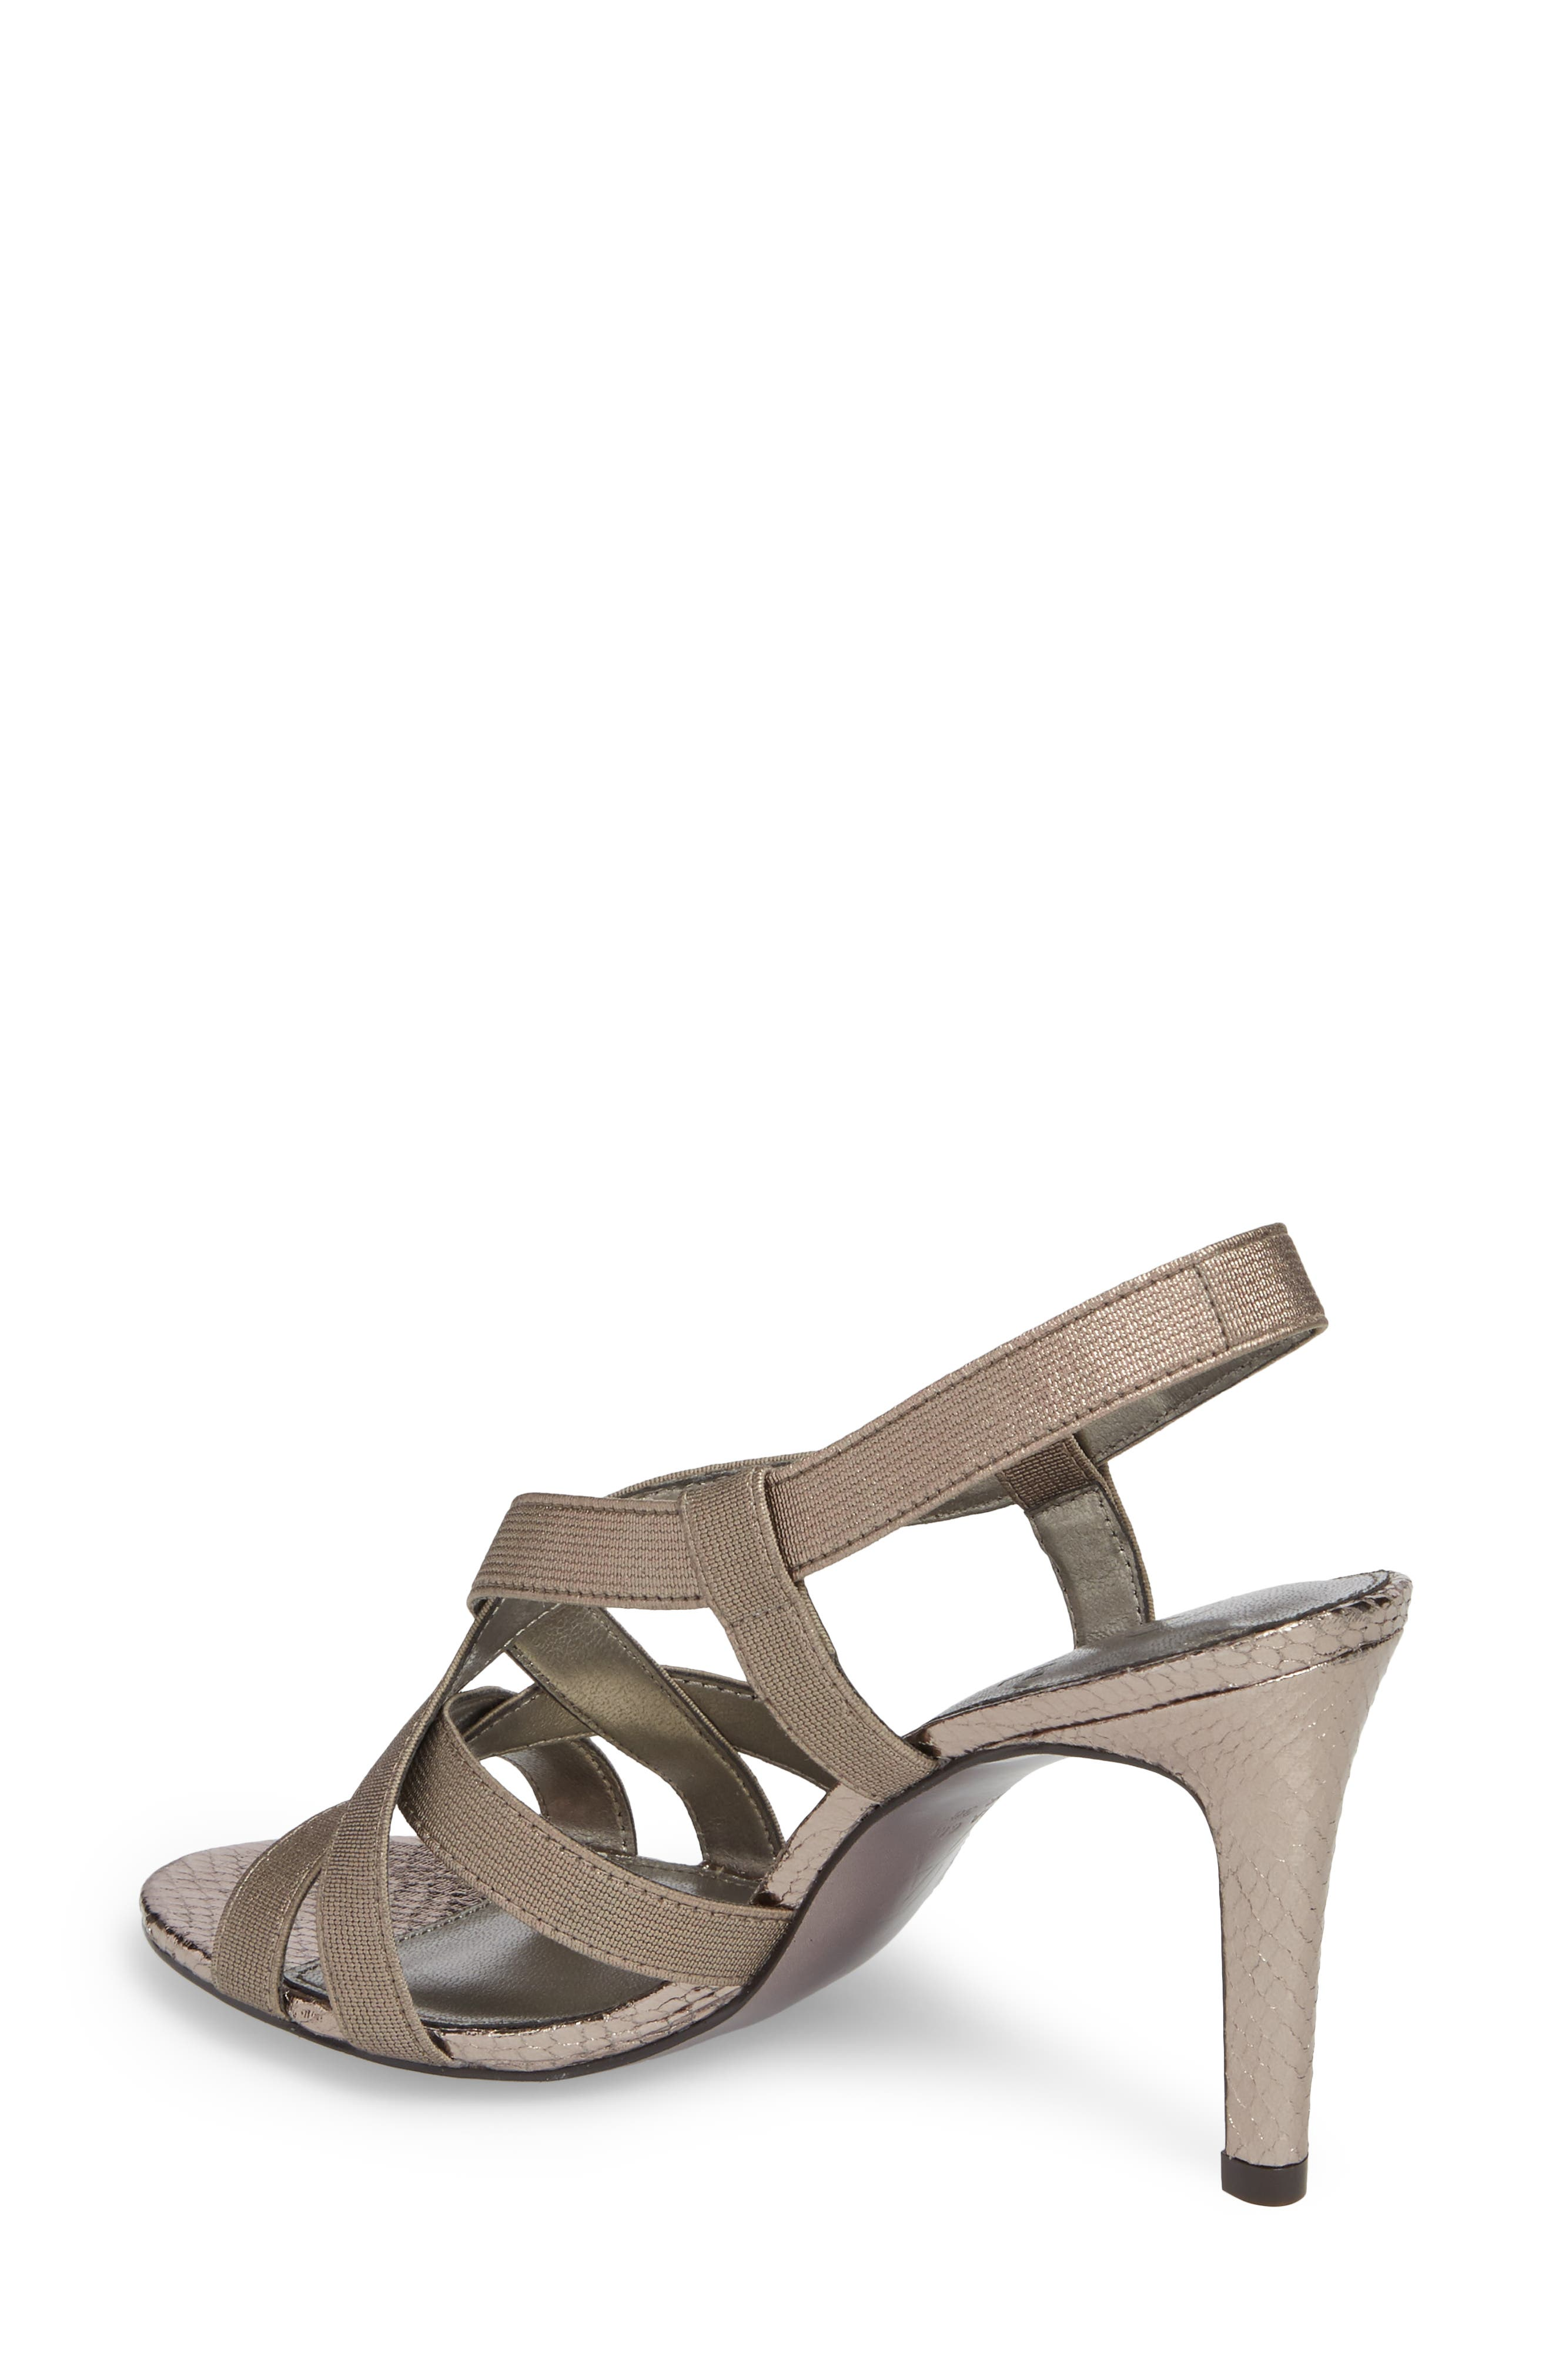 Addie Sandal,                             Alternate thumbnail 2, color,                             Gunmetal Fabric